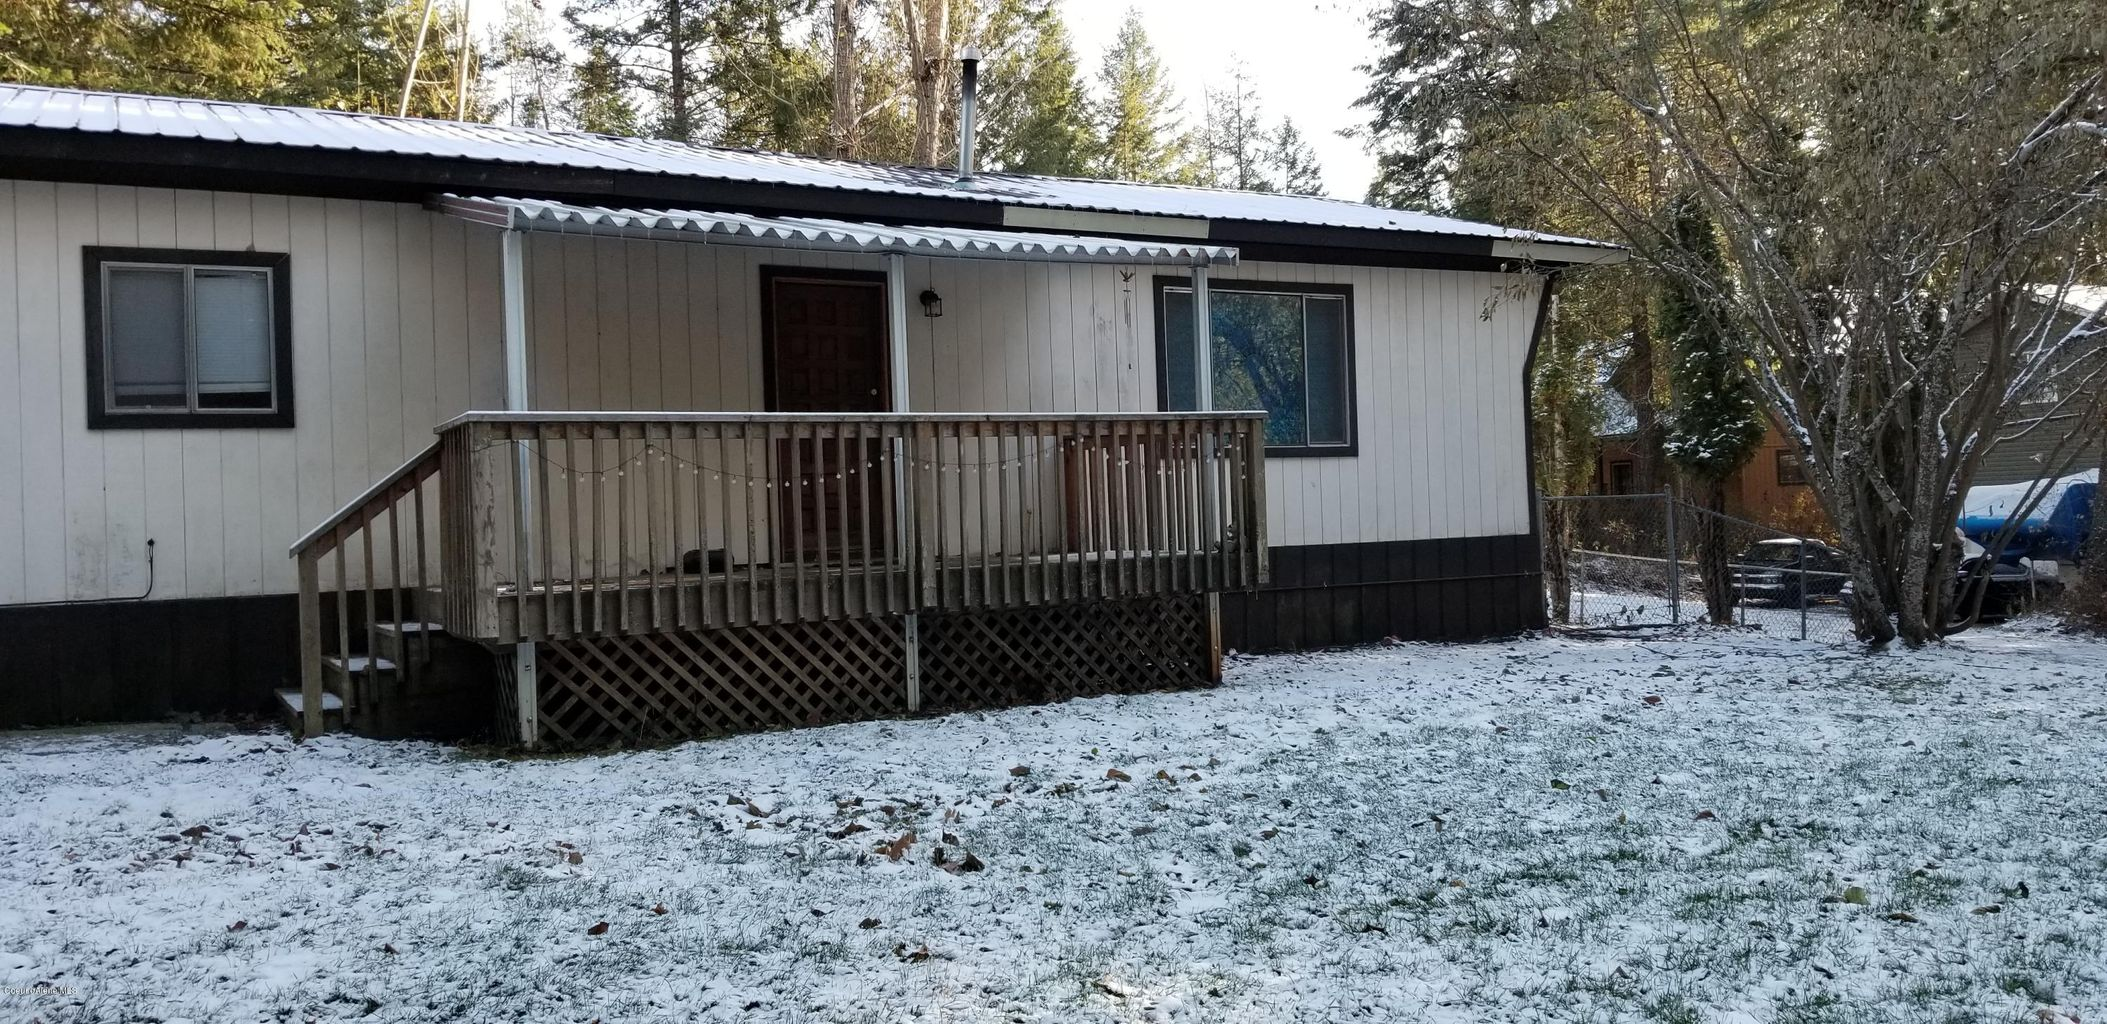 6586 W Twin Echo Road: Dbl Wide Manufactured home, 2 building lots, detached 2-car garage.